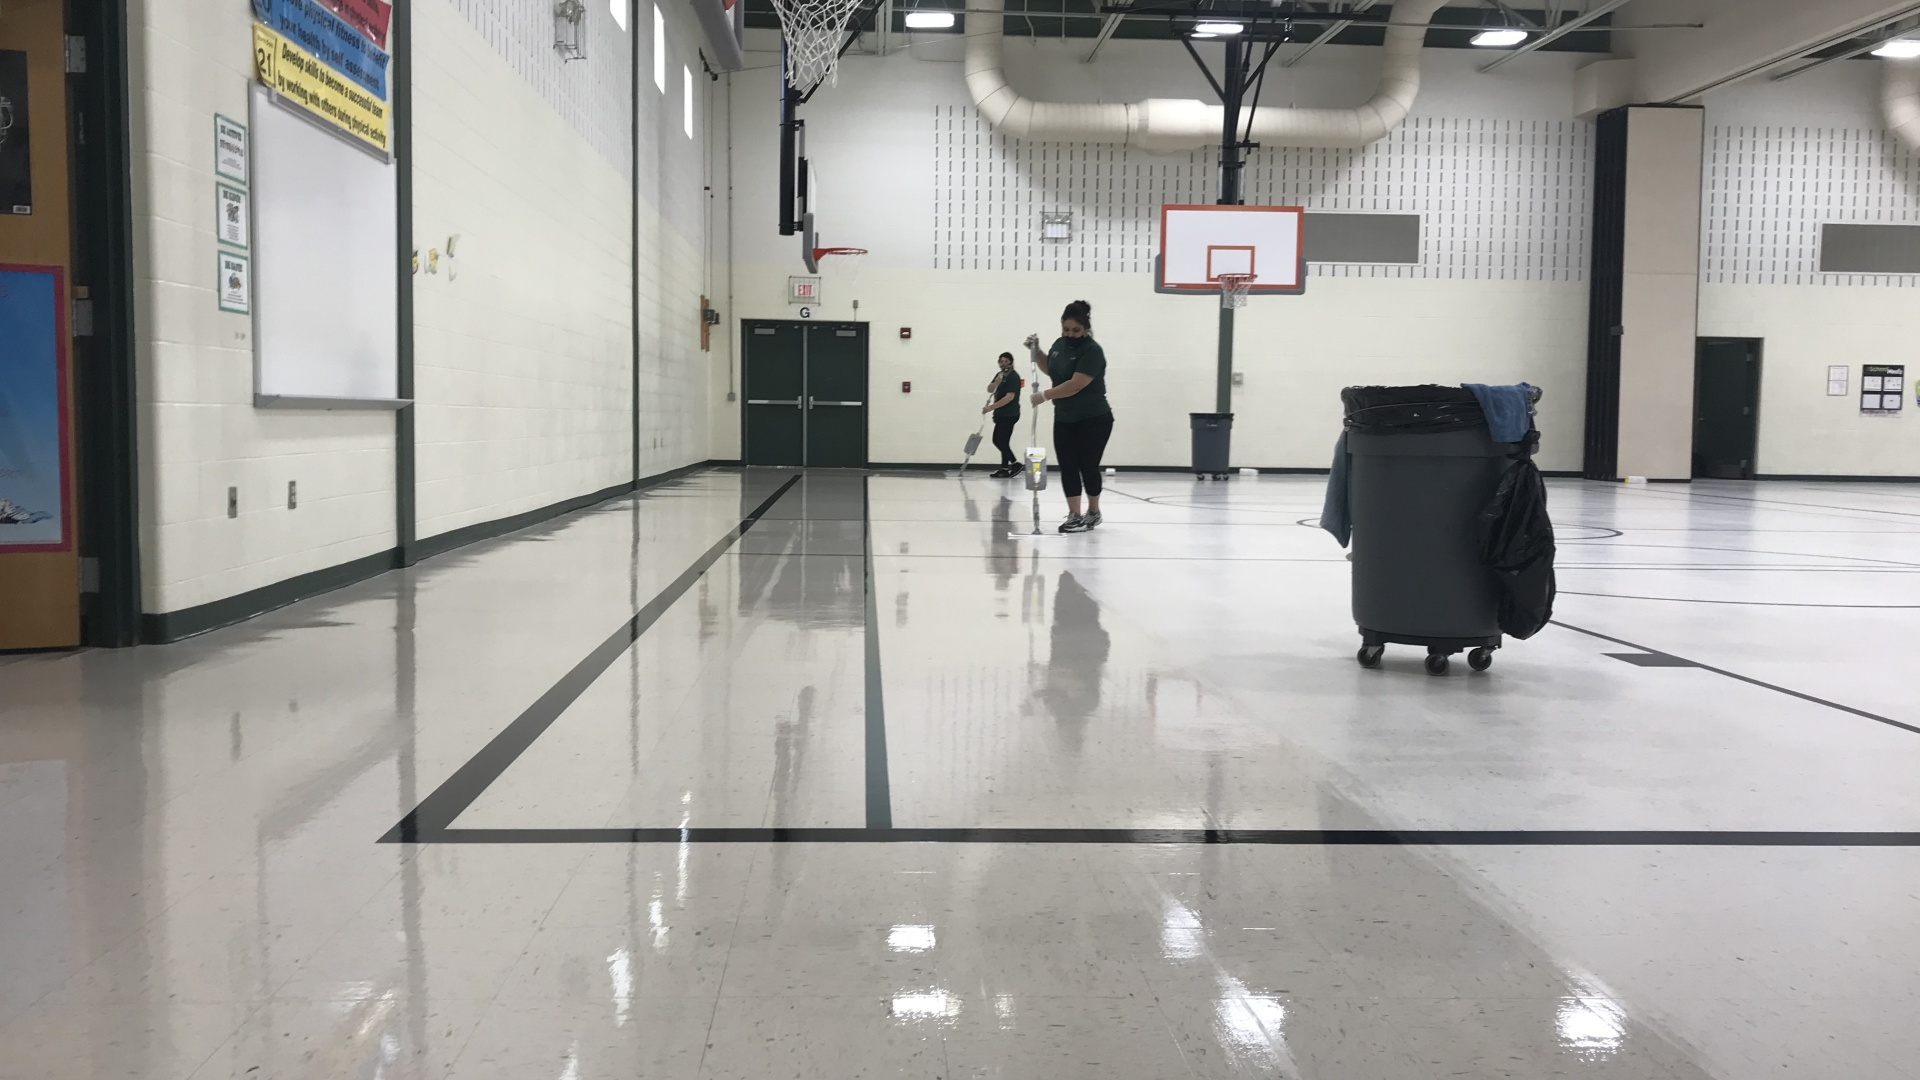 slidshow image - Central School's Gym Freshly Waxed - Summer 2020 -